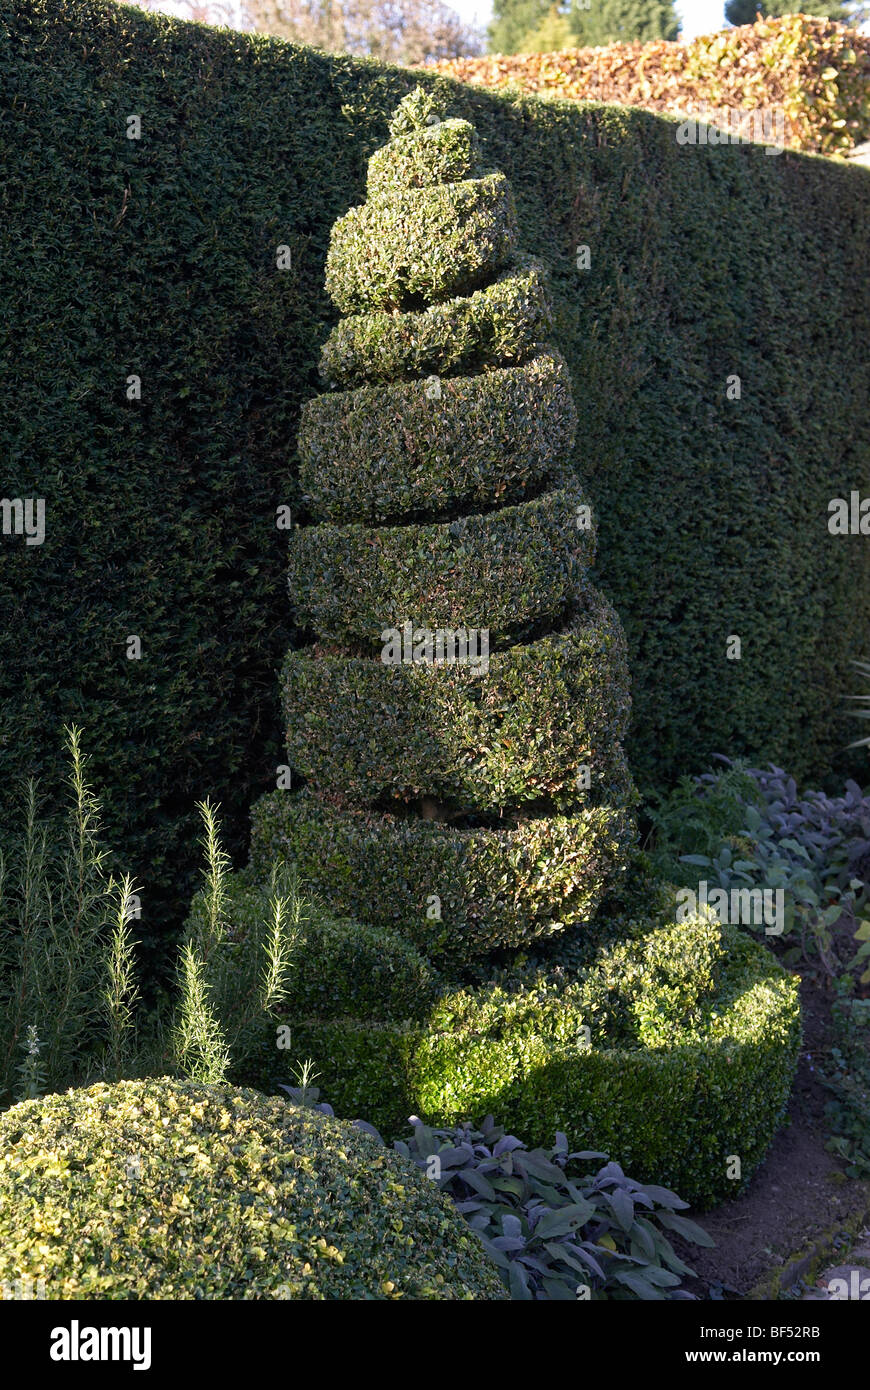 Spiral Clipped Box Topiary In Flower Bed Stock Photo Alamy